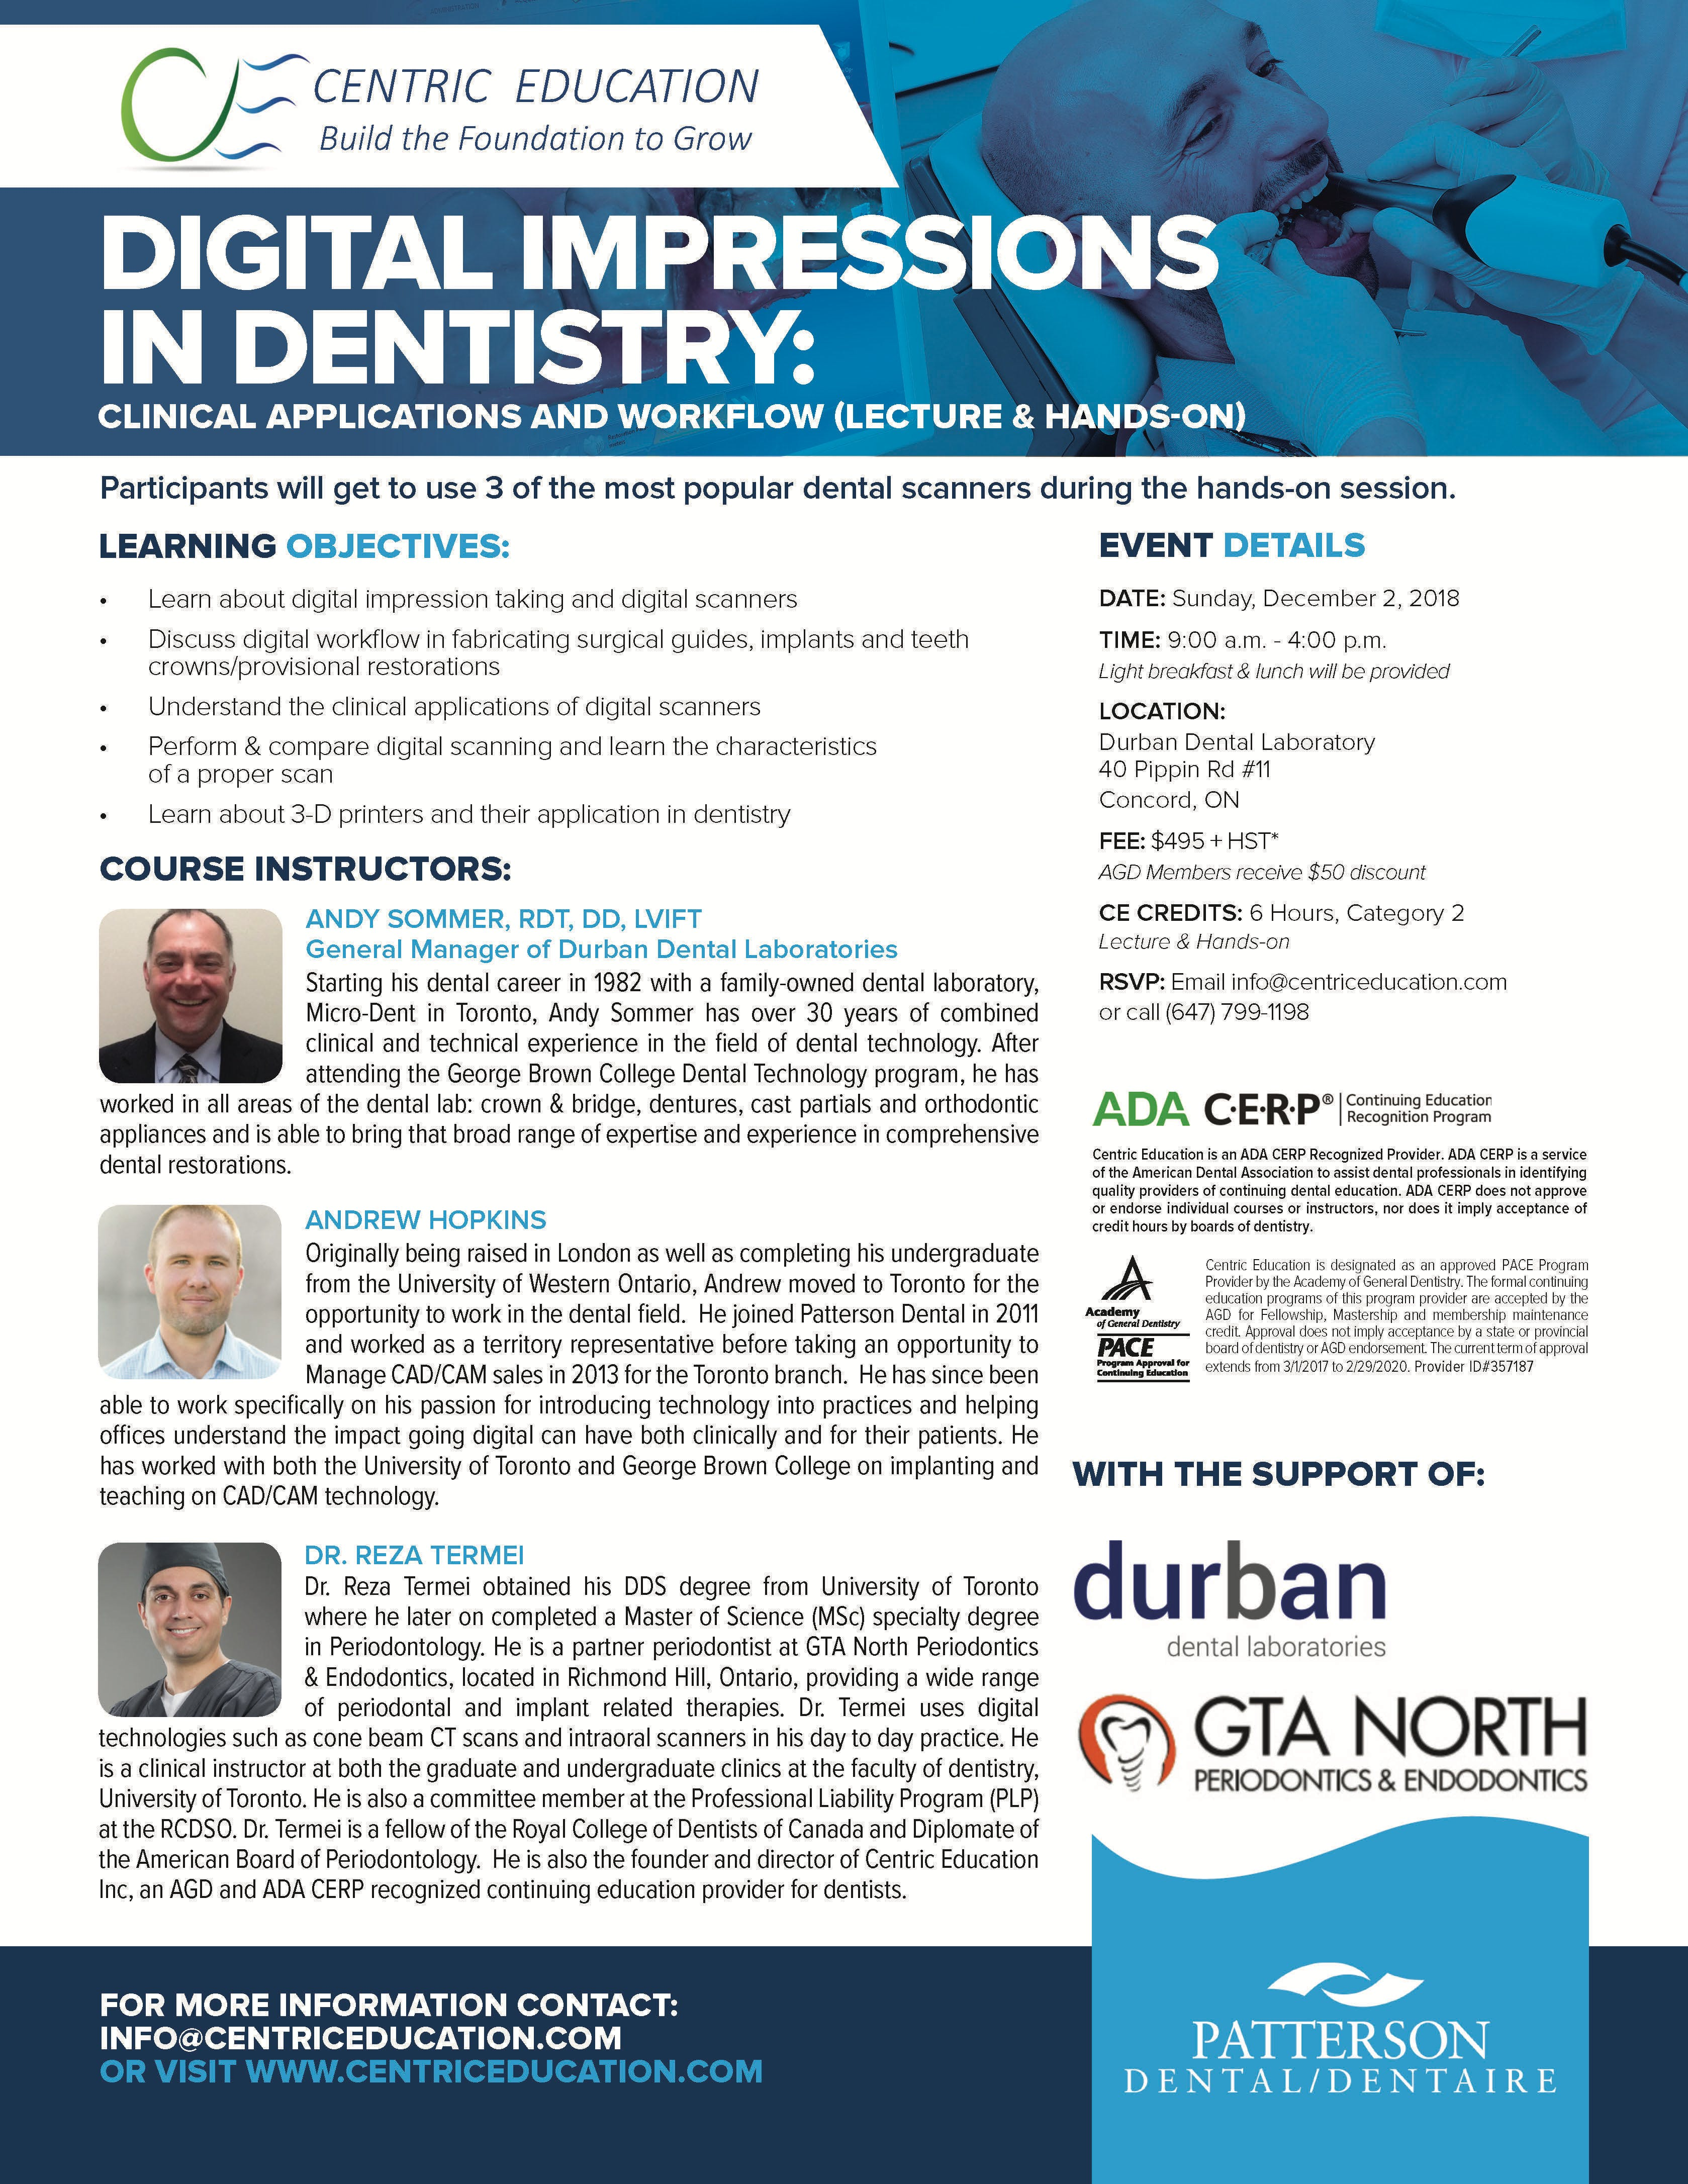 Digital dentistry events in the City  Top Upcoming Events for